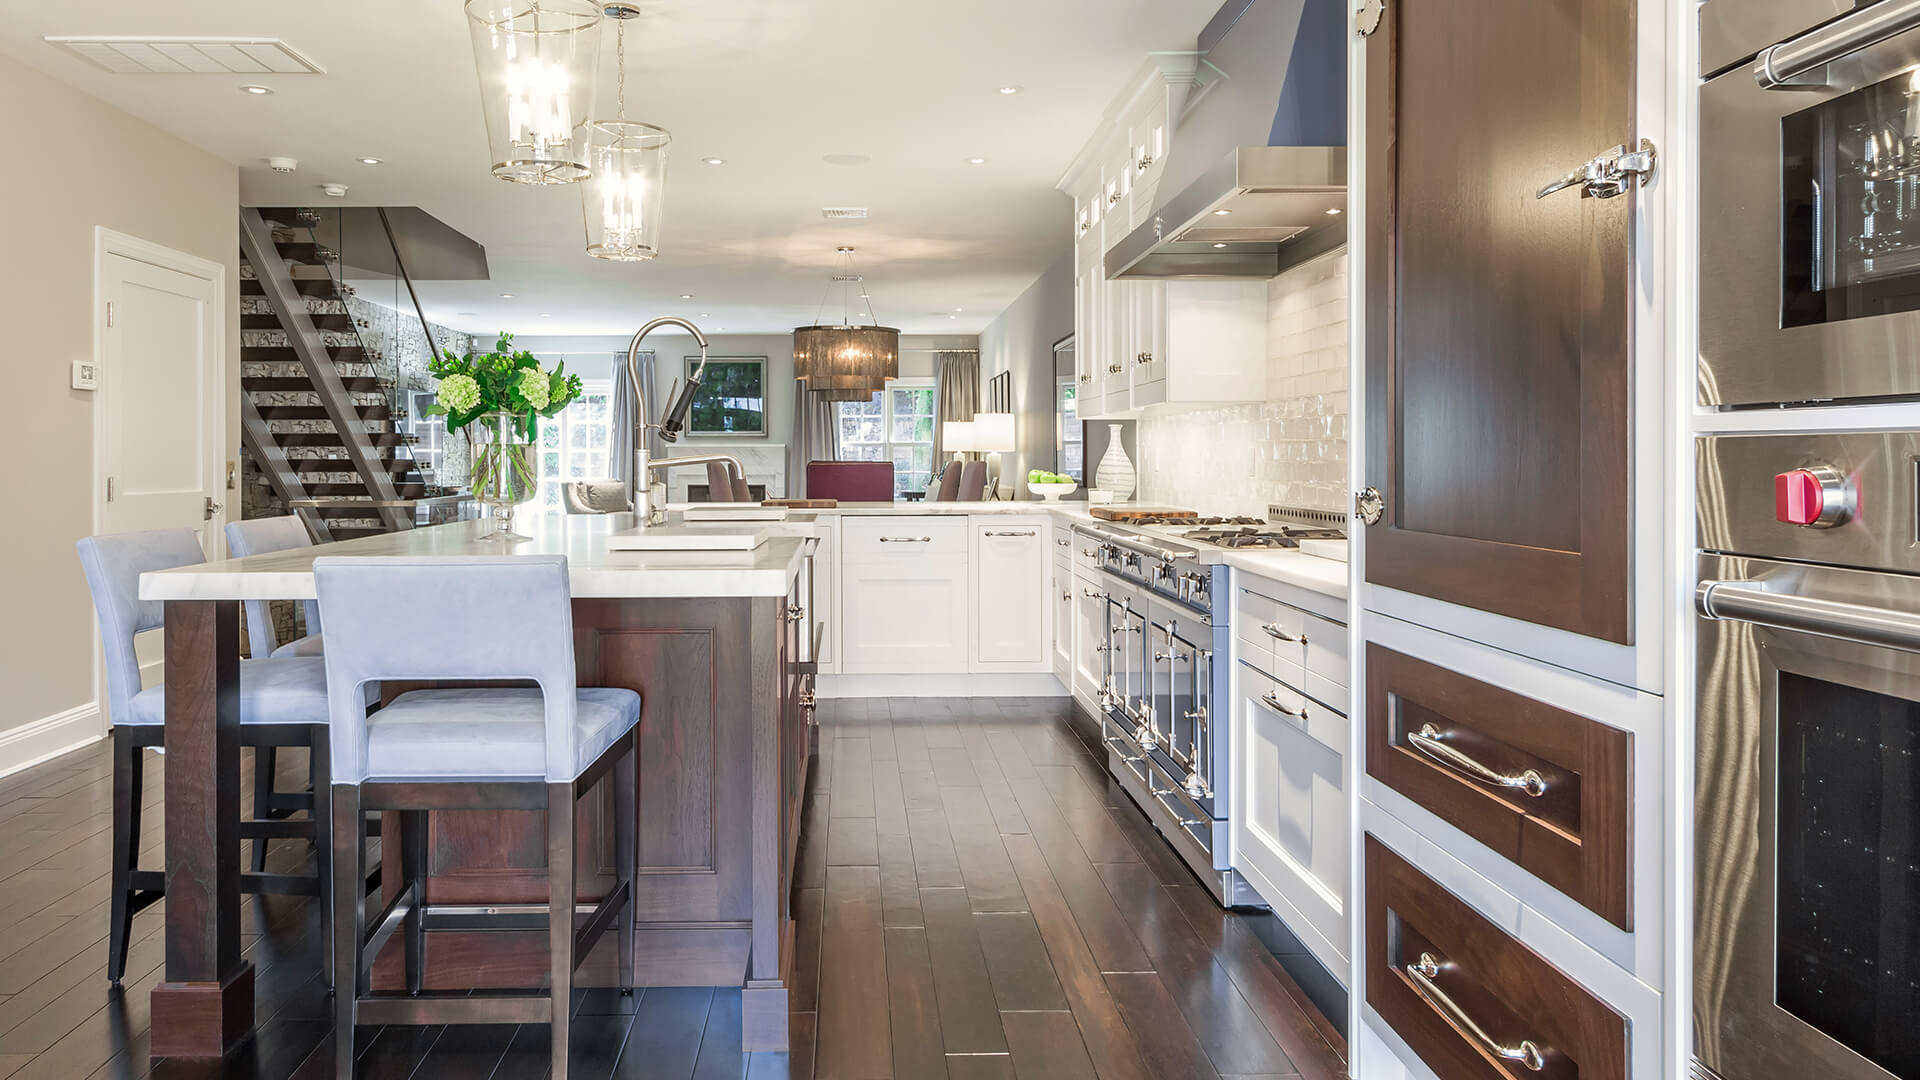 Bakes and Kropp Walnut panels, nickel finishes, and elegant meridian crown molding